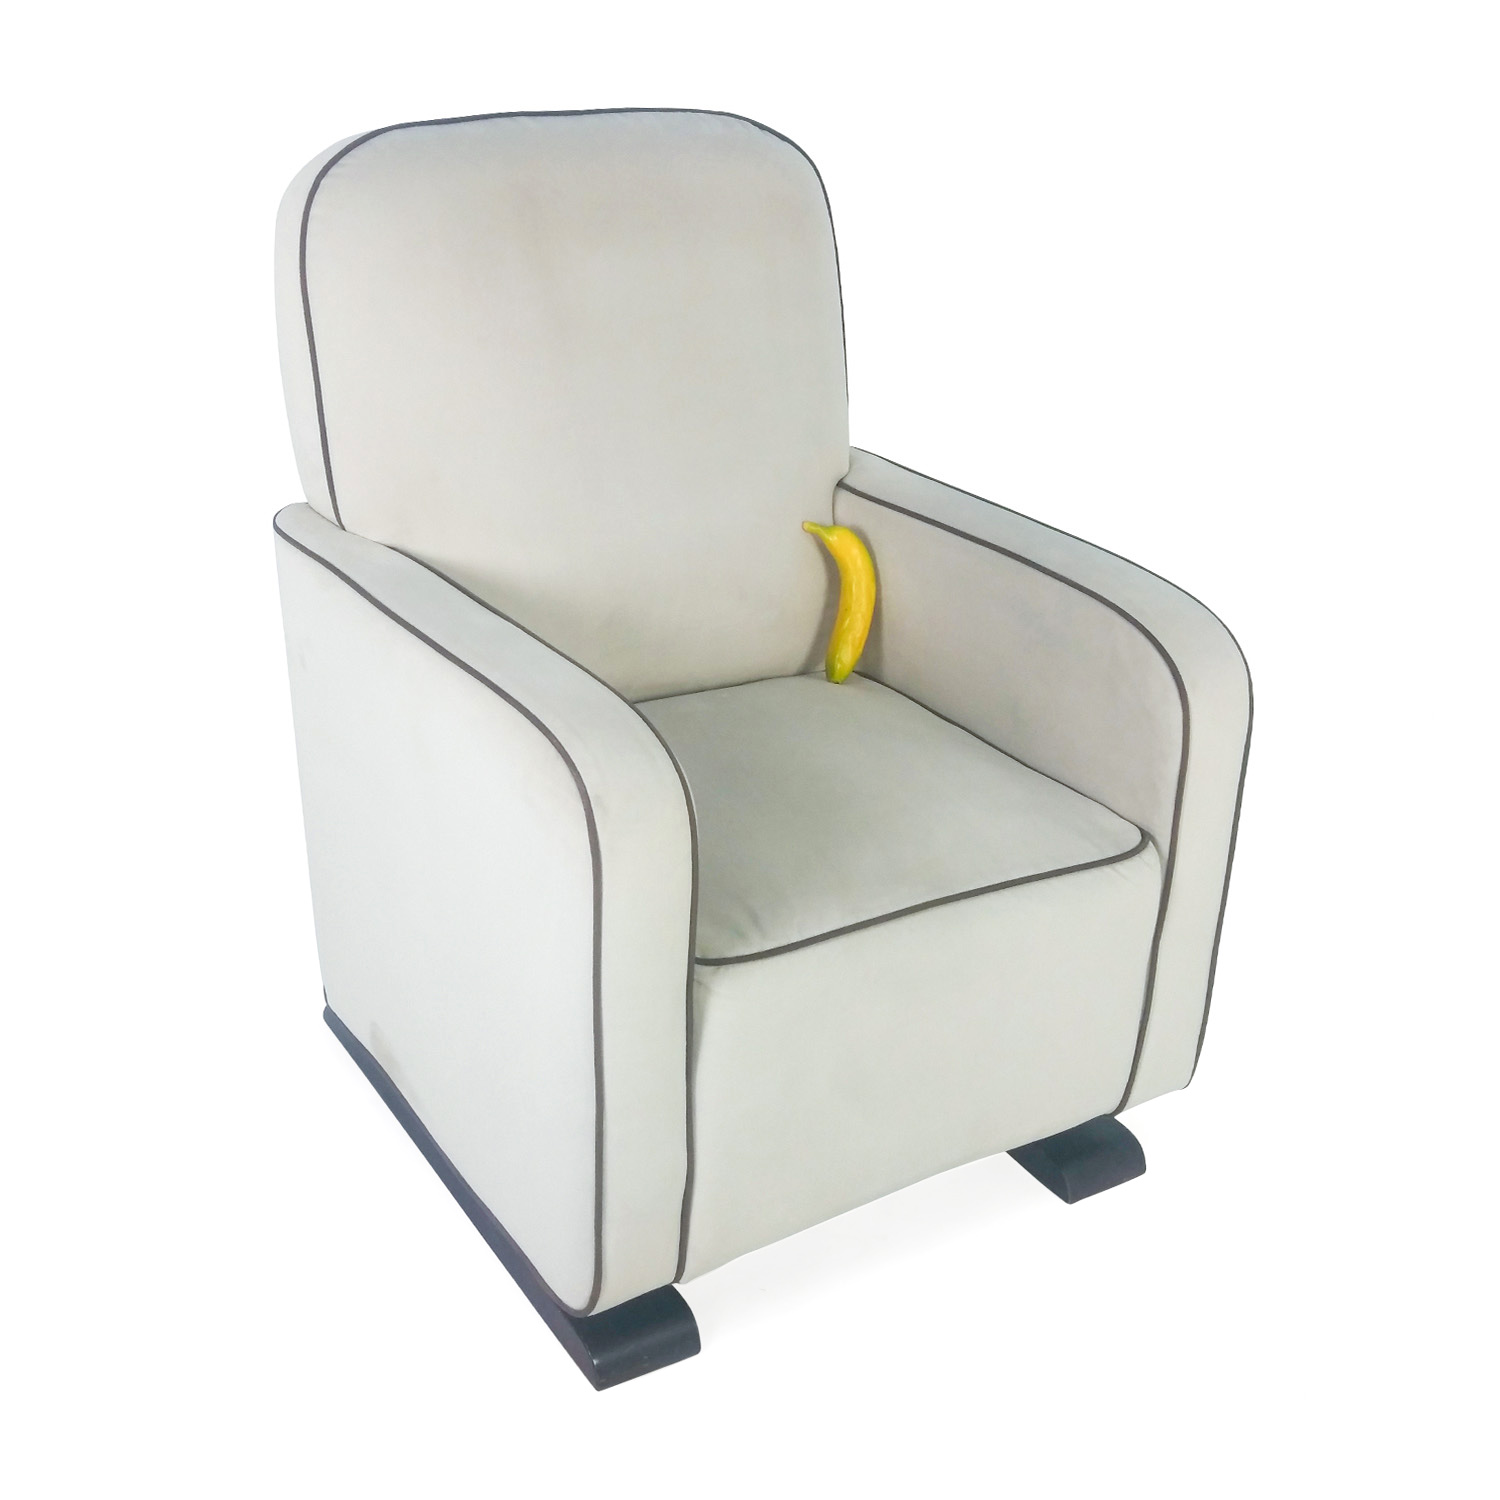 White Modern Chair 88 Off Modern White Rocking Chair Chairs